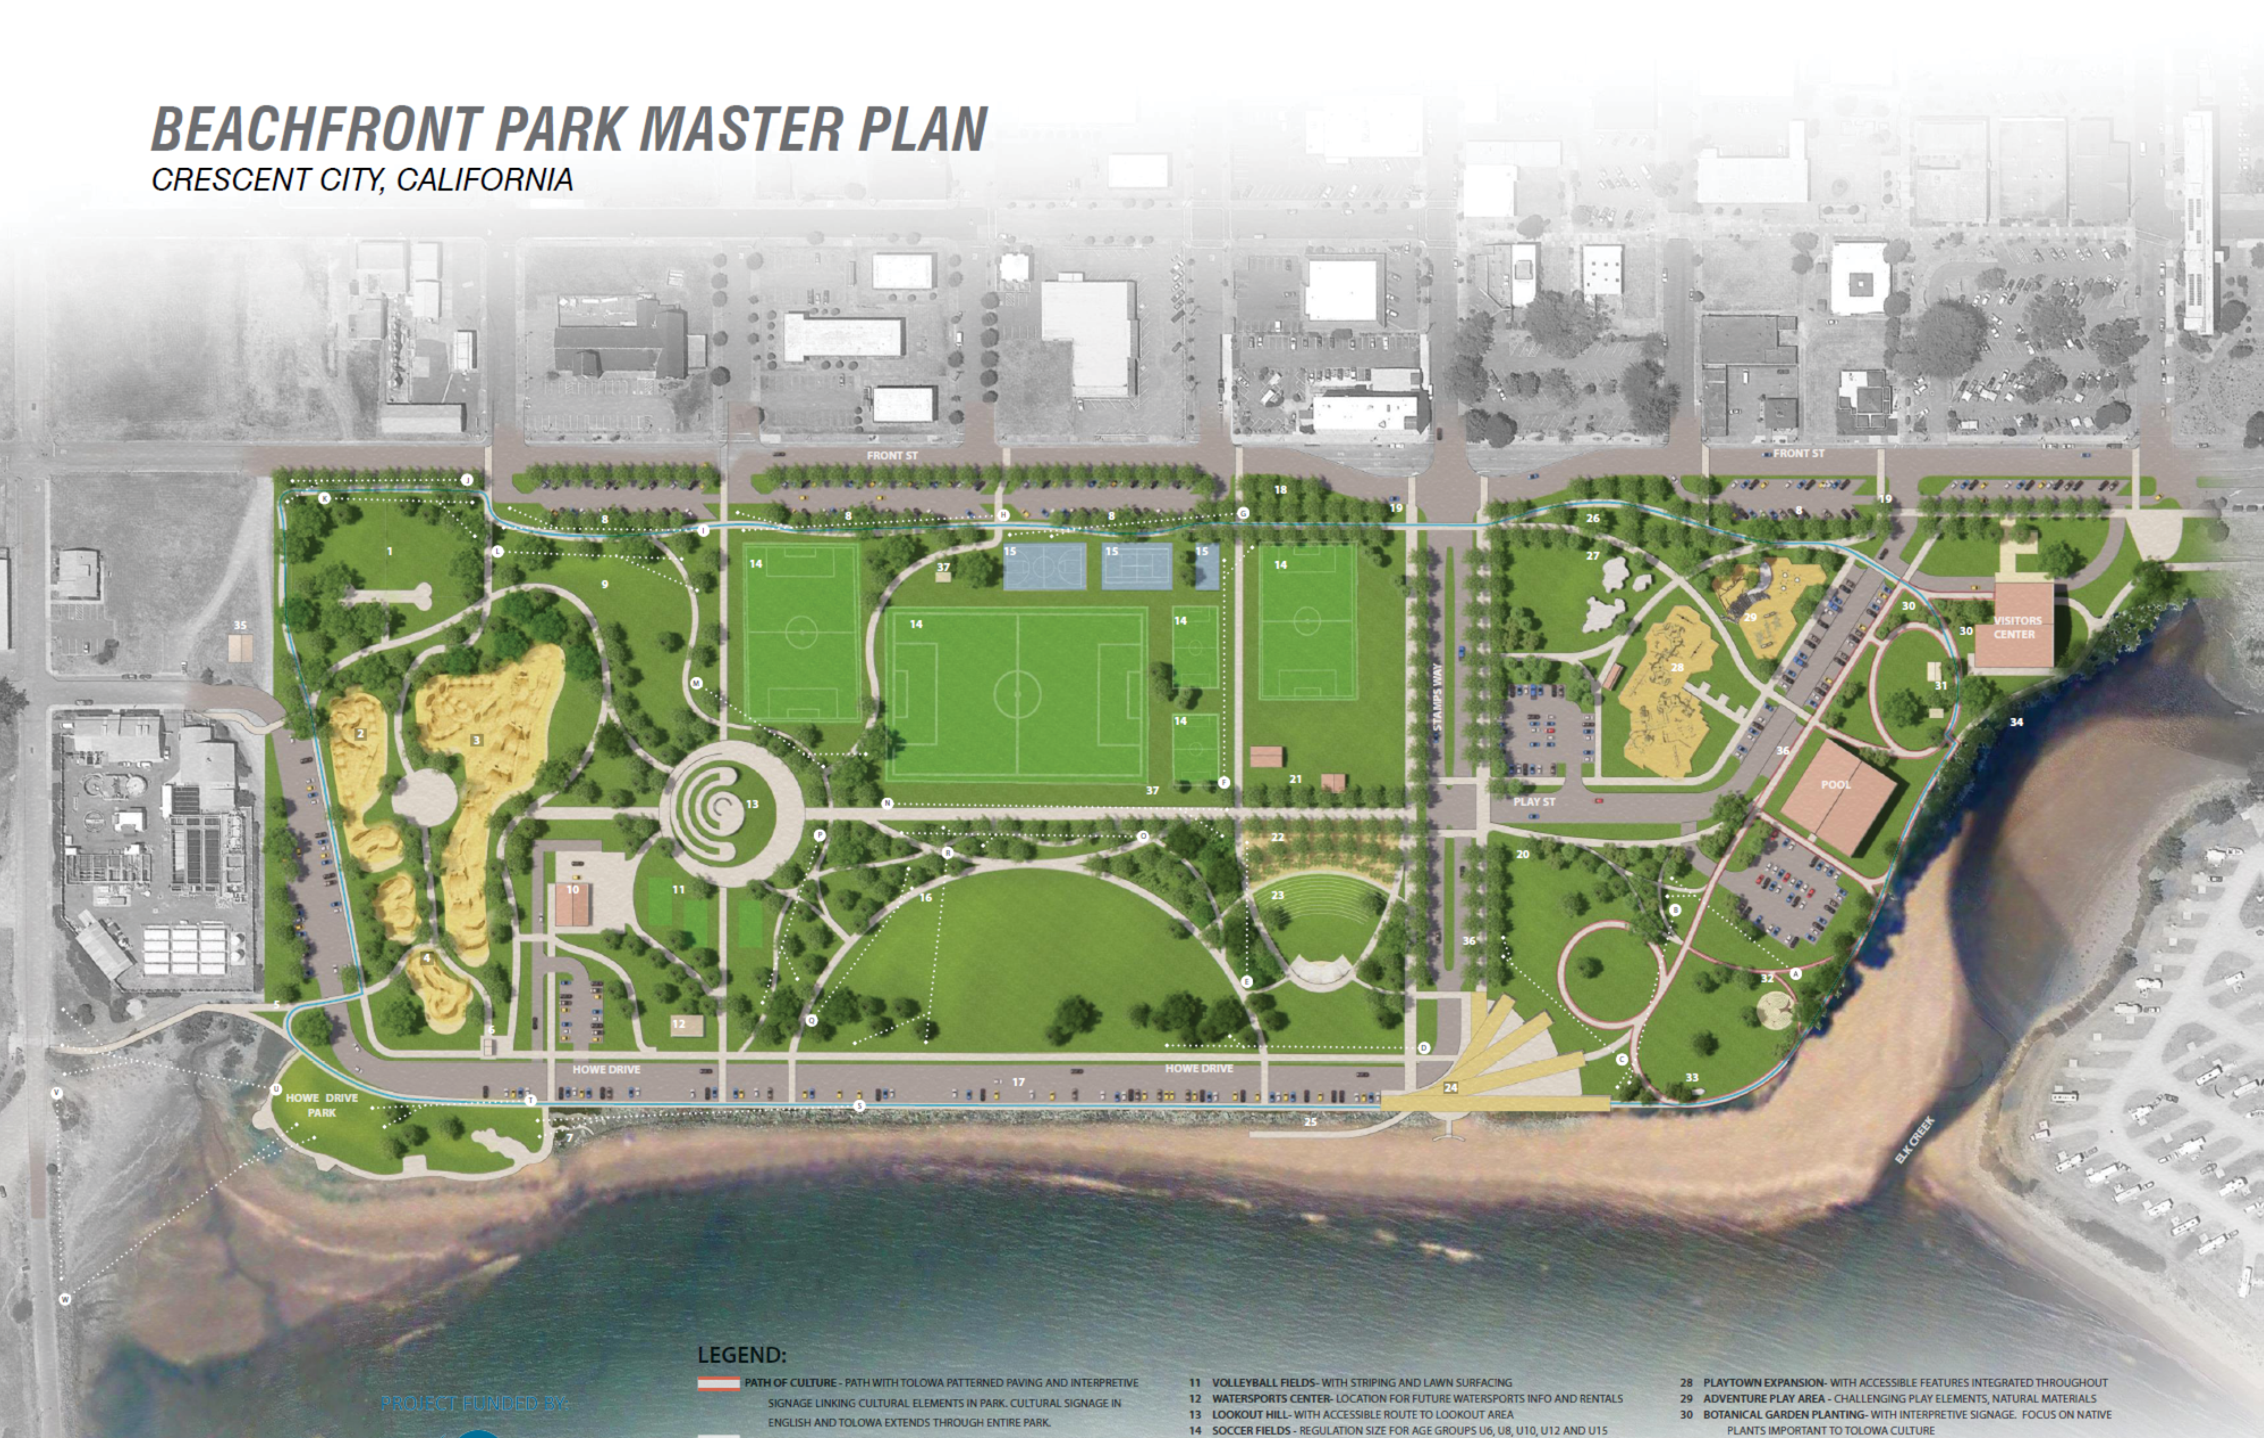 A preliminary layout of the City's Beachfront Park that includes playgrounds, sport fields, an amphitheater, and large open grass areas to enjoy ocean waves.